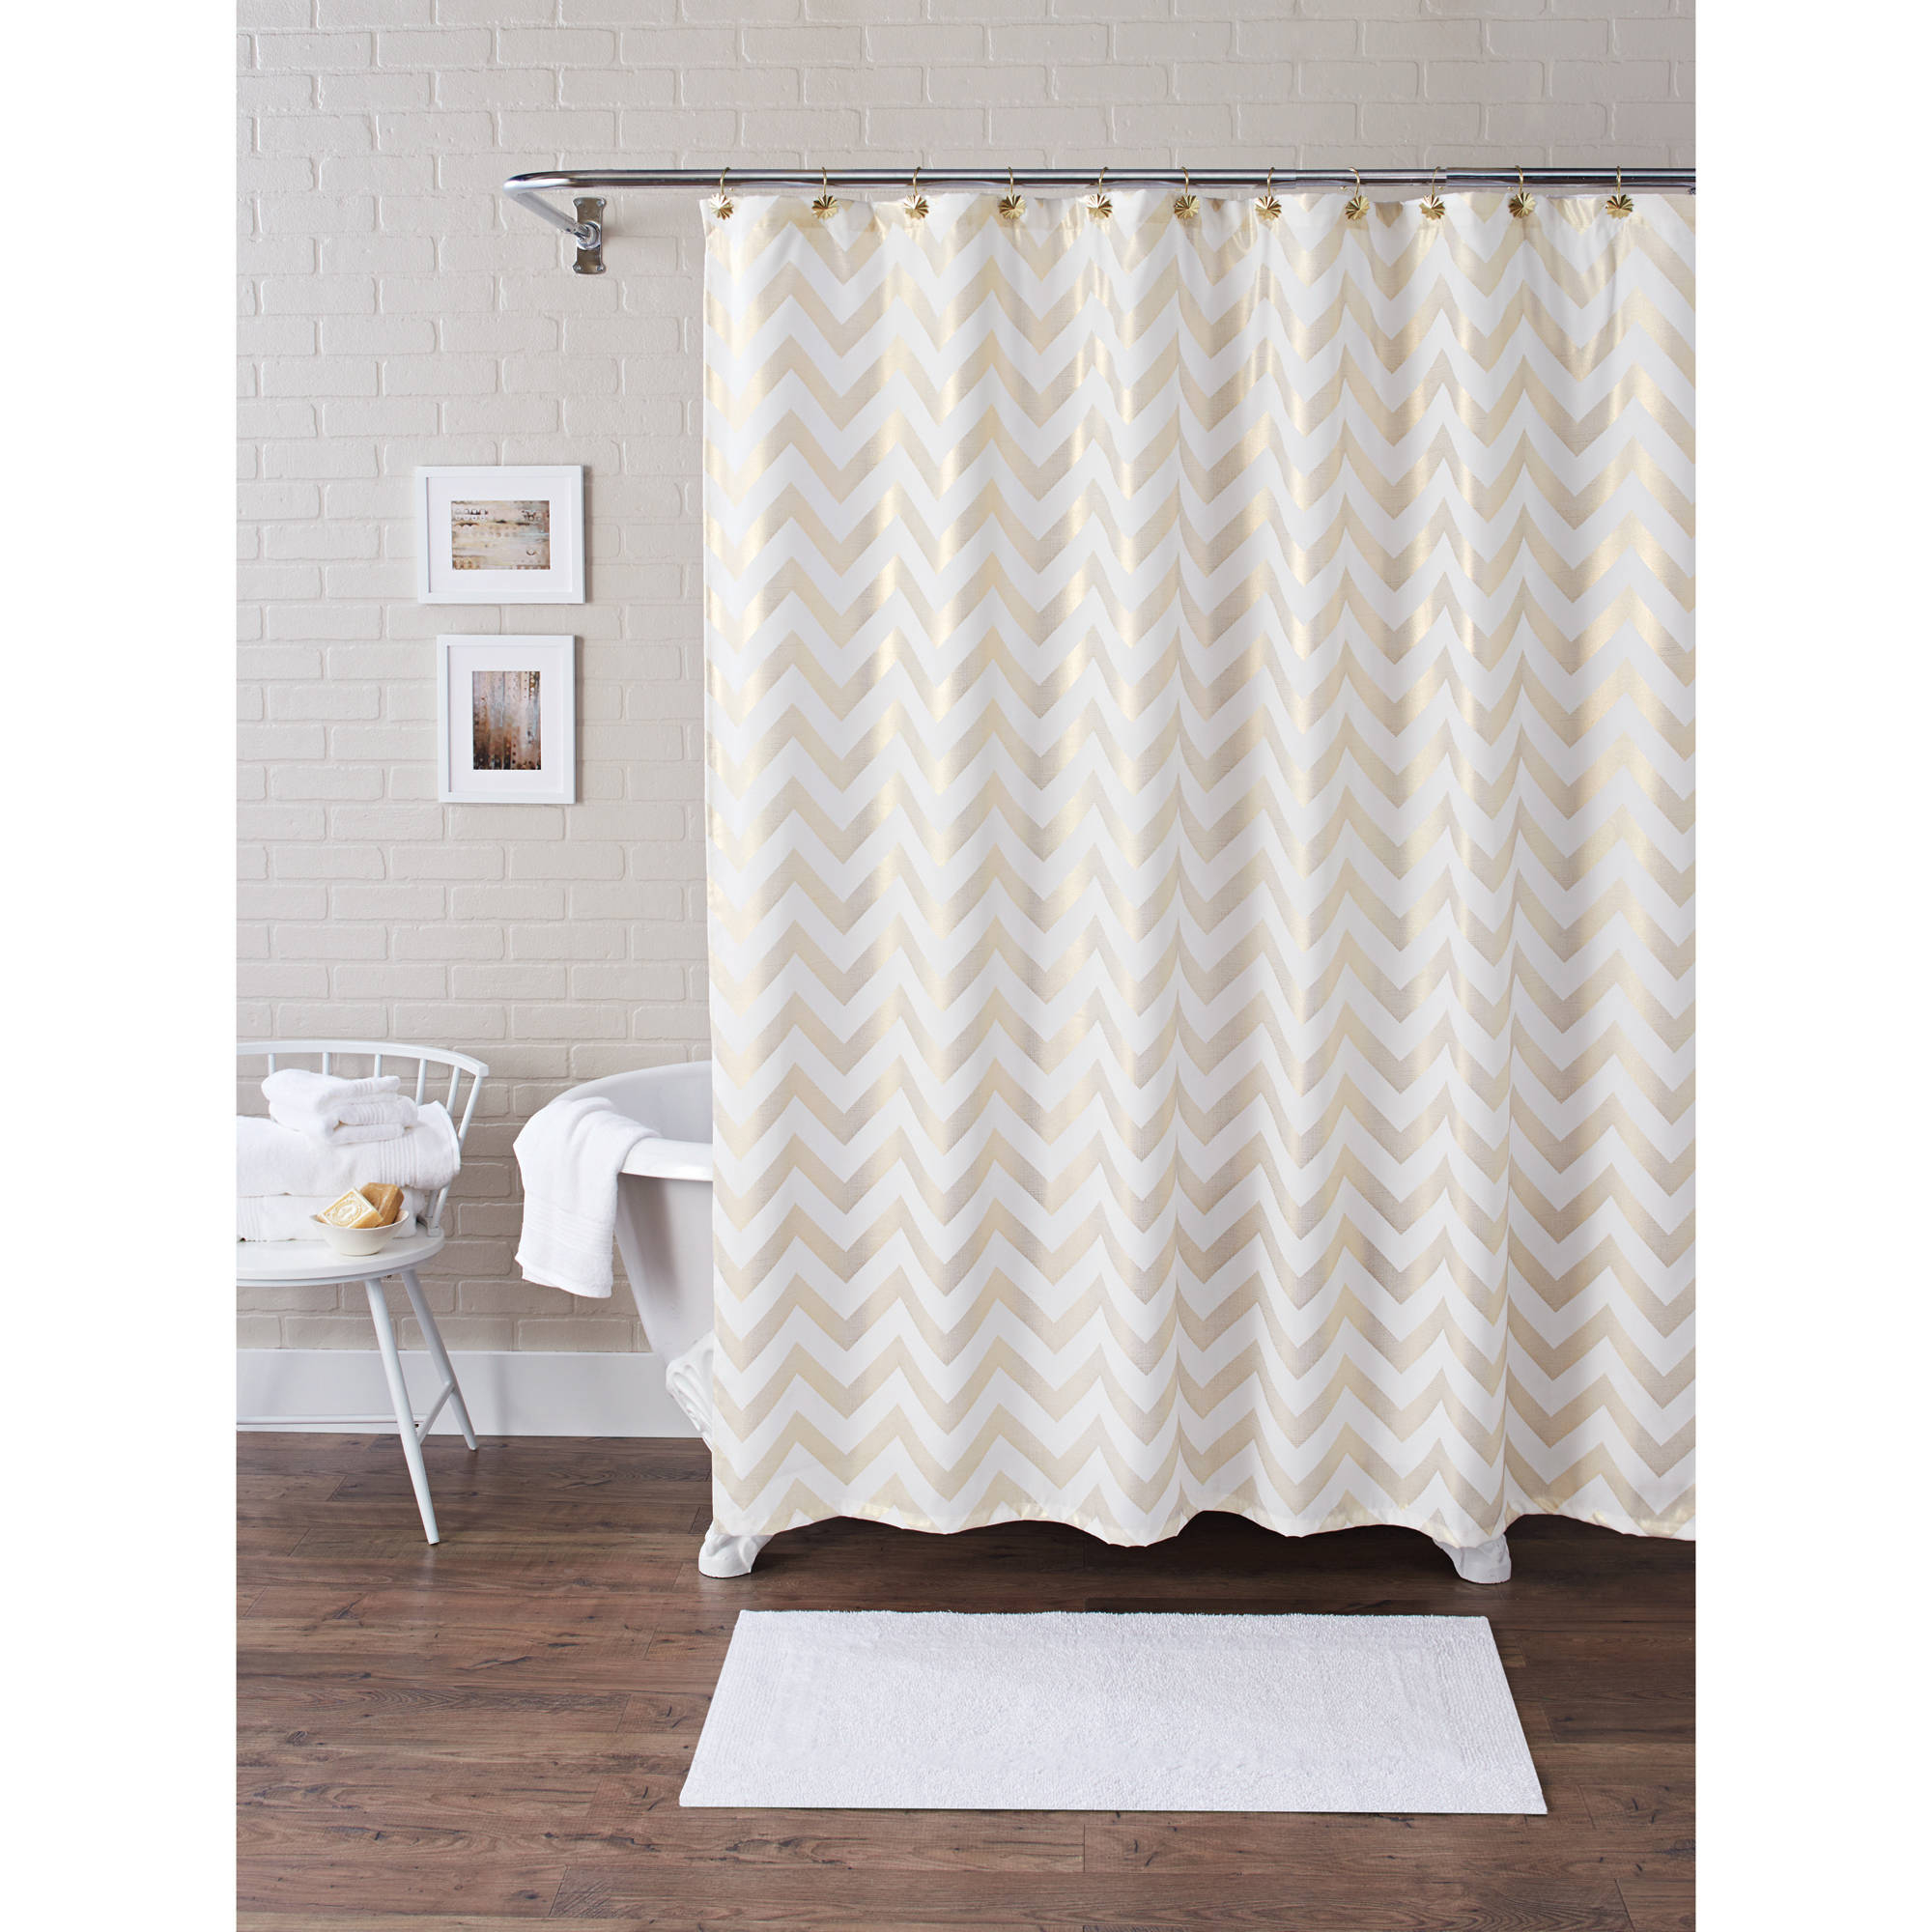 Chevron Shower Curtains pertaining to size 2000 X 2000